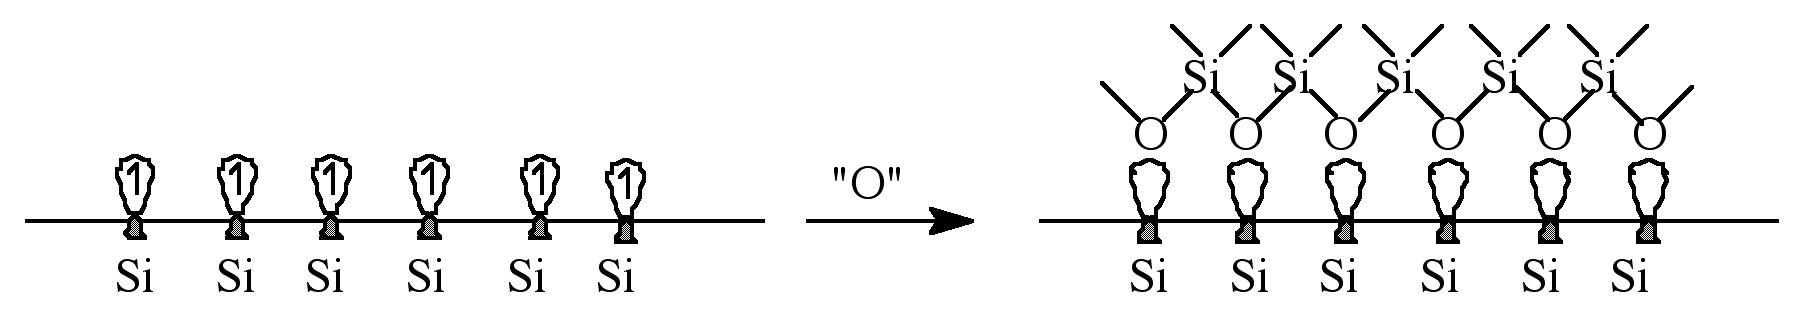 Figure 1 (dangling bonds.jpg)